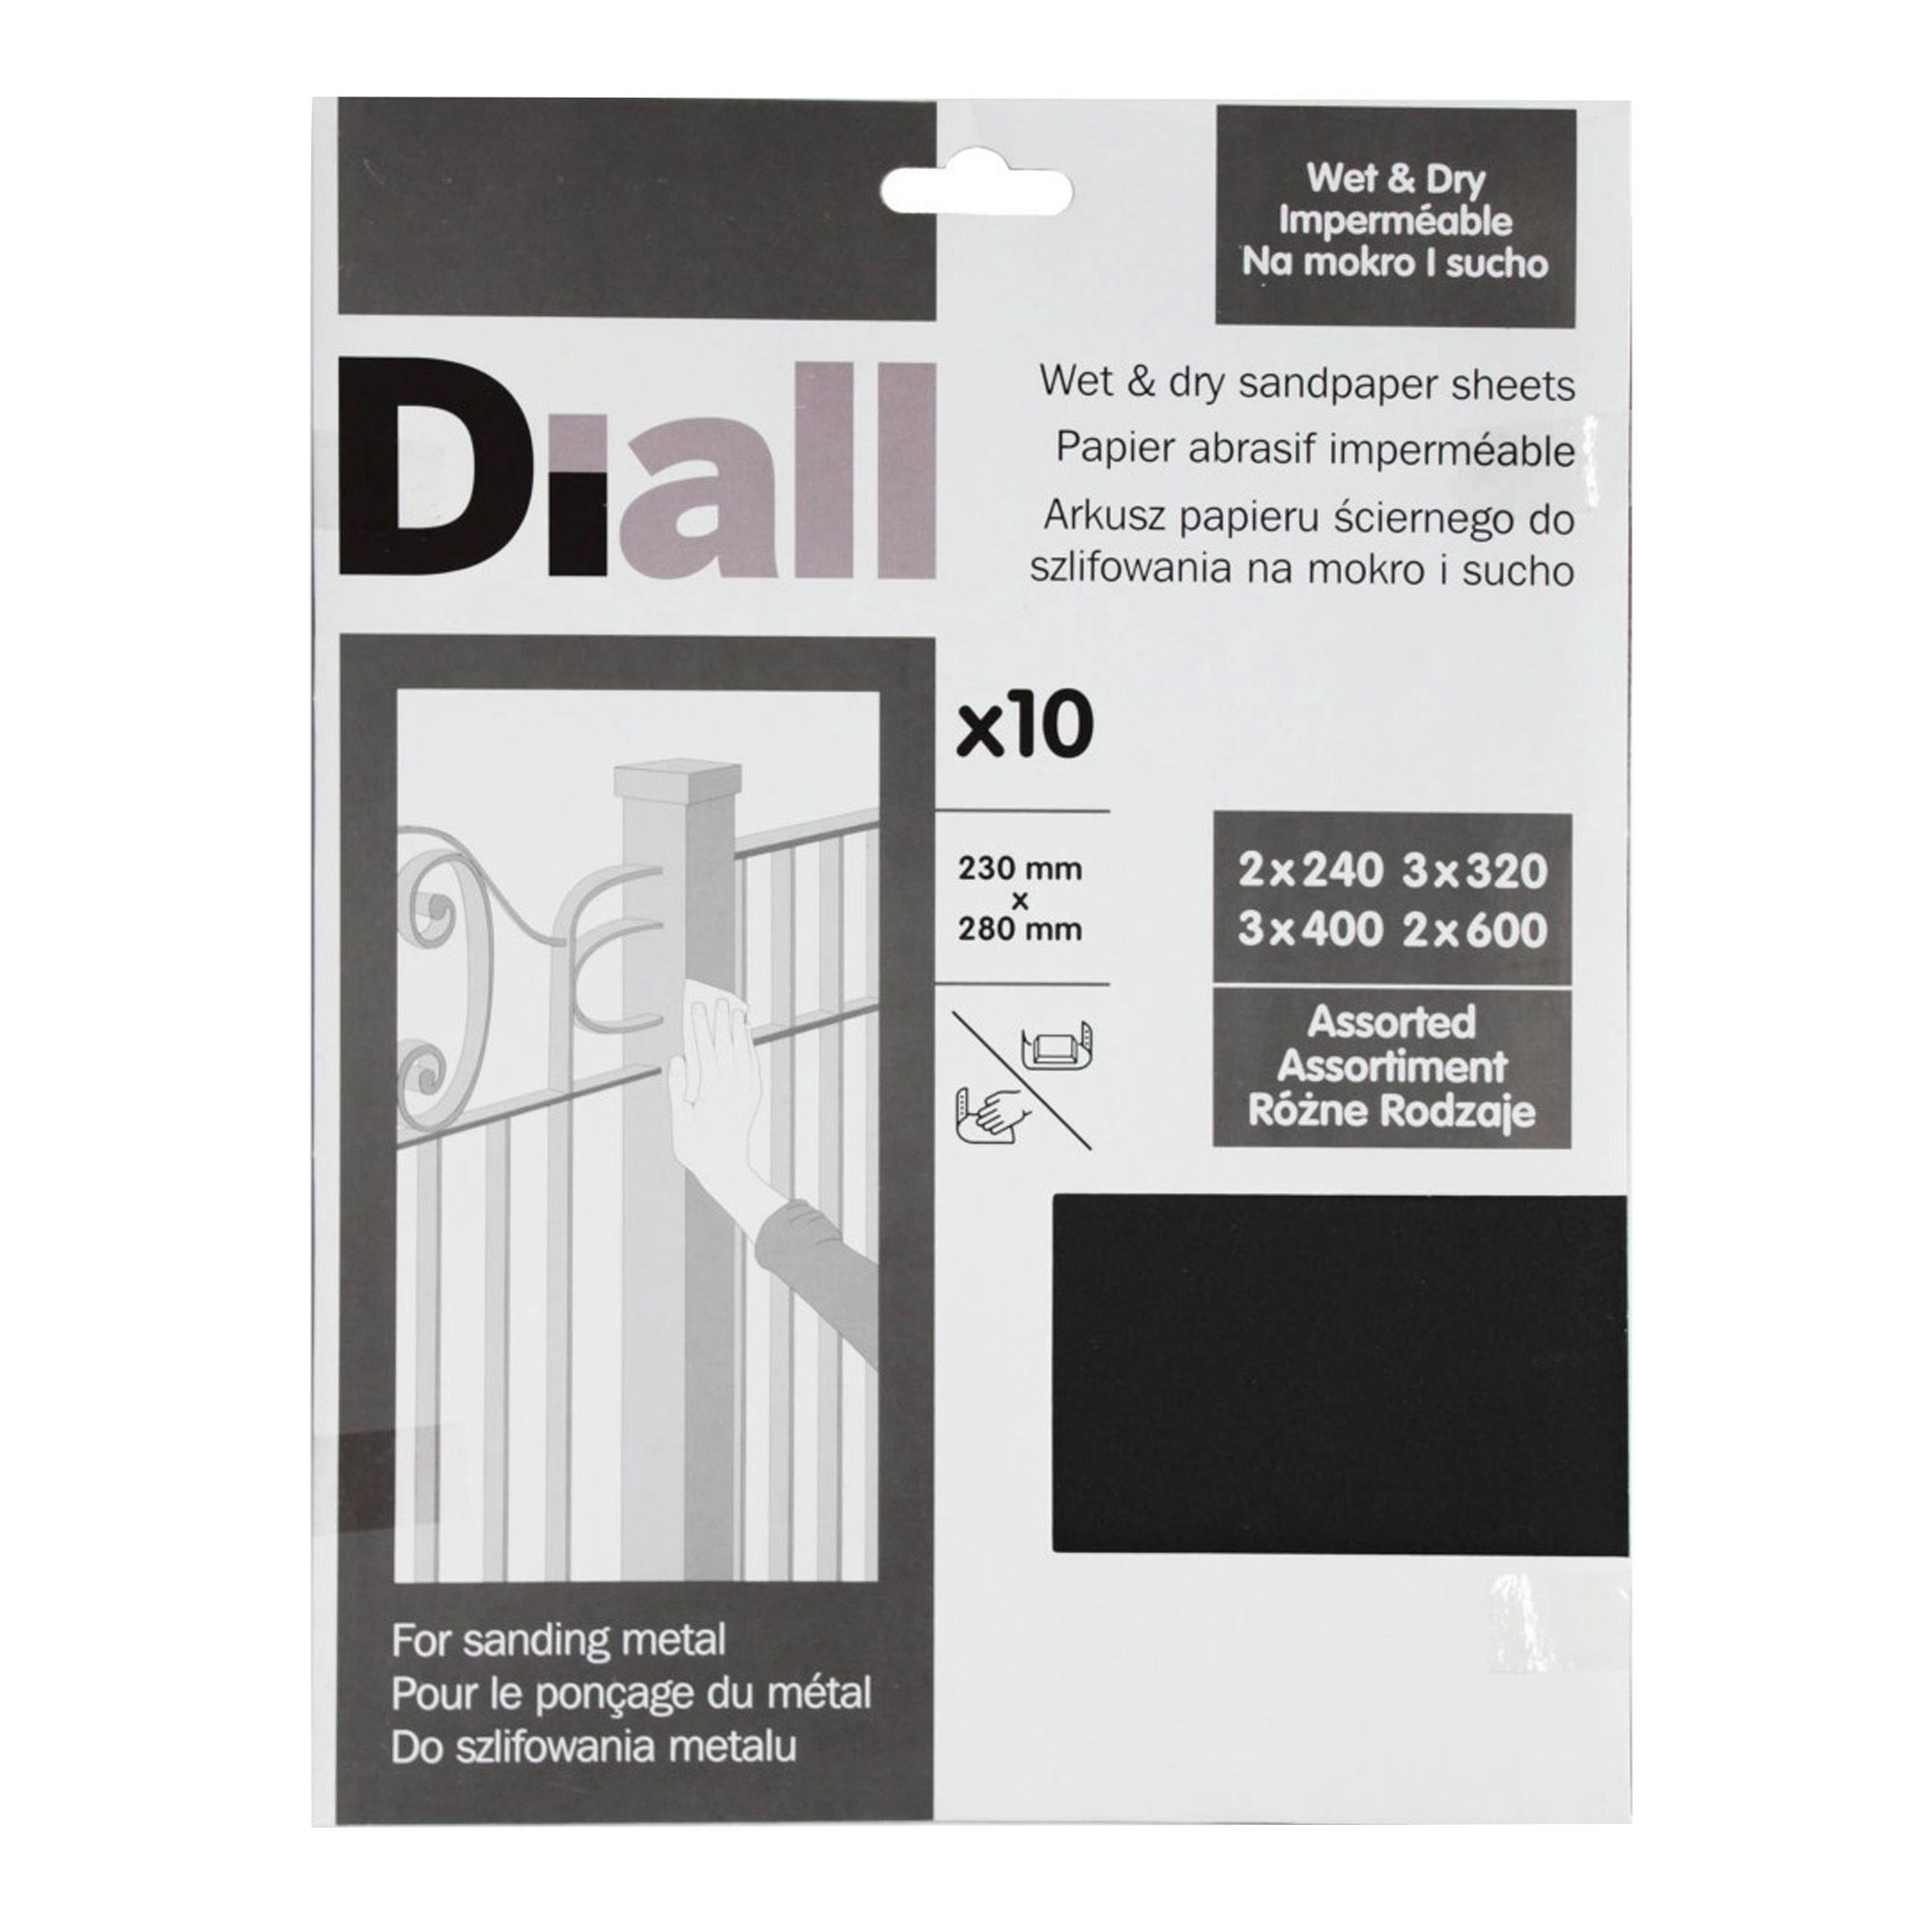 Diall Mixed Grit Assorted Sandpaper Sheet Pack Of 10 Departments Diy At B Q Sanding Sandpaper Wet And Dry